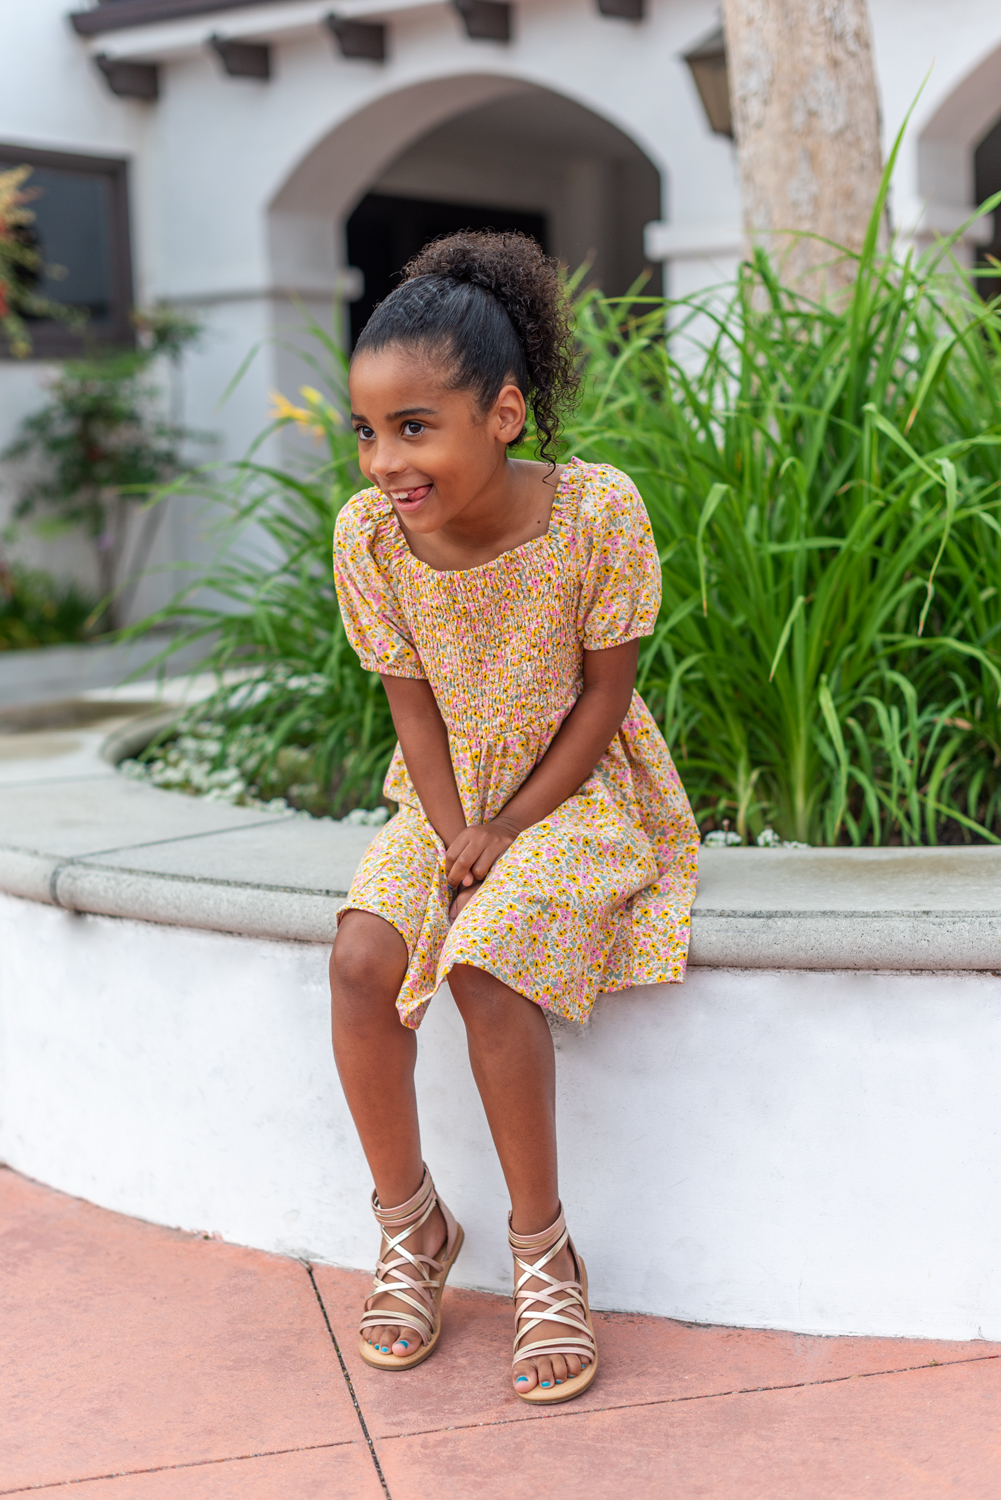 Mommy and Me Outfits by popular LA fashion blog, Posh in Progress: image of a young girl sitting outside and wearing a floral print dress and gold strap gladiator sandals.